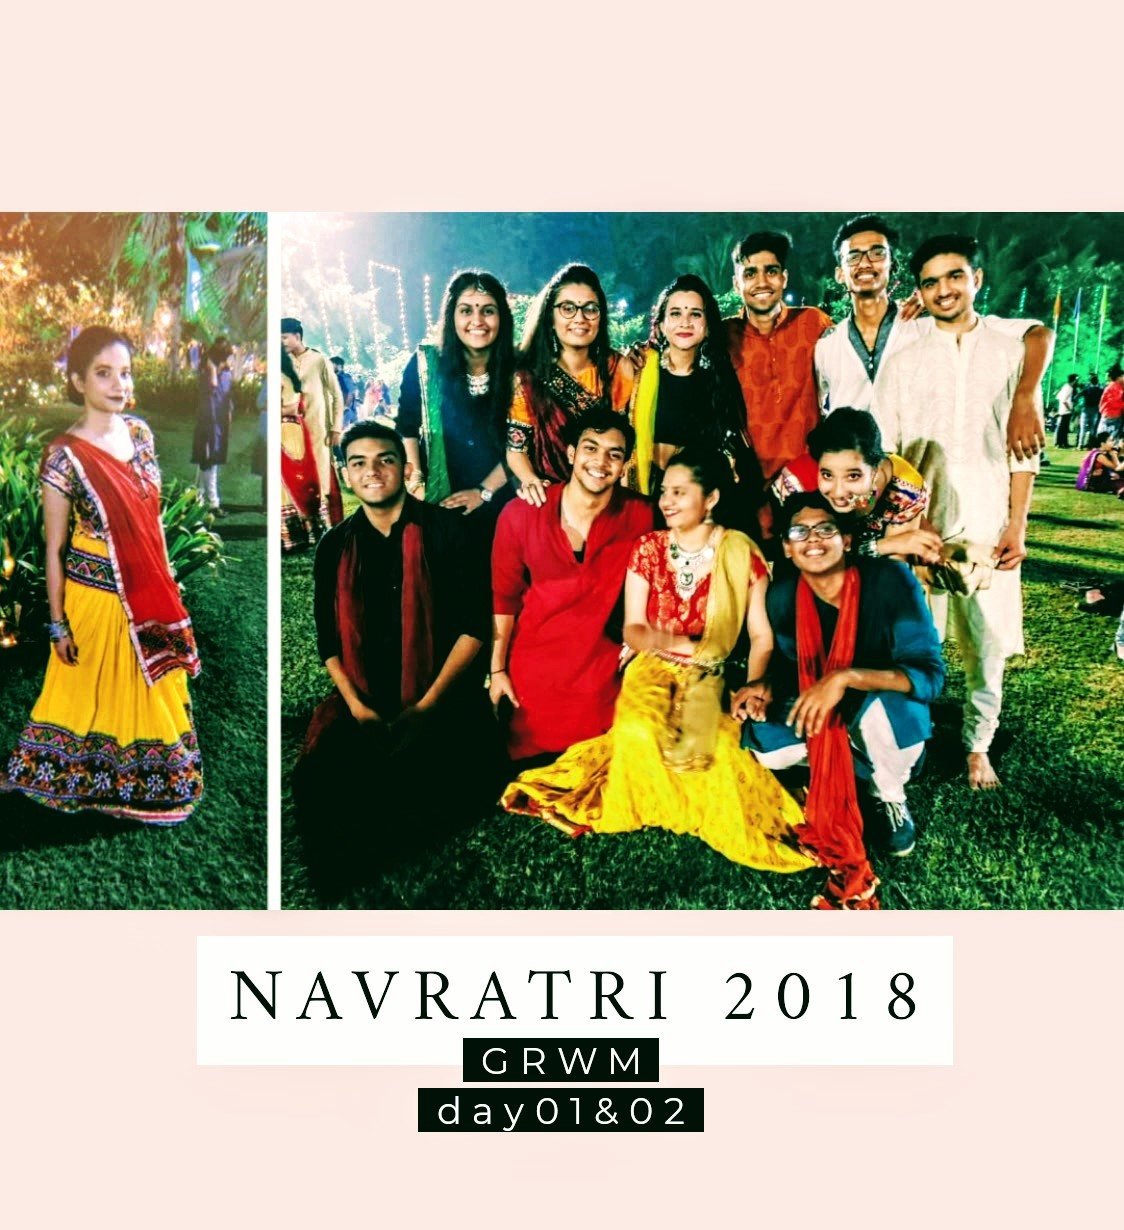 Grwm Navratri 2018 Ombre Days Among countless use cases, they are useful for sign users in, searching for information. ombre days blogger